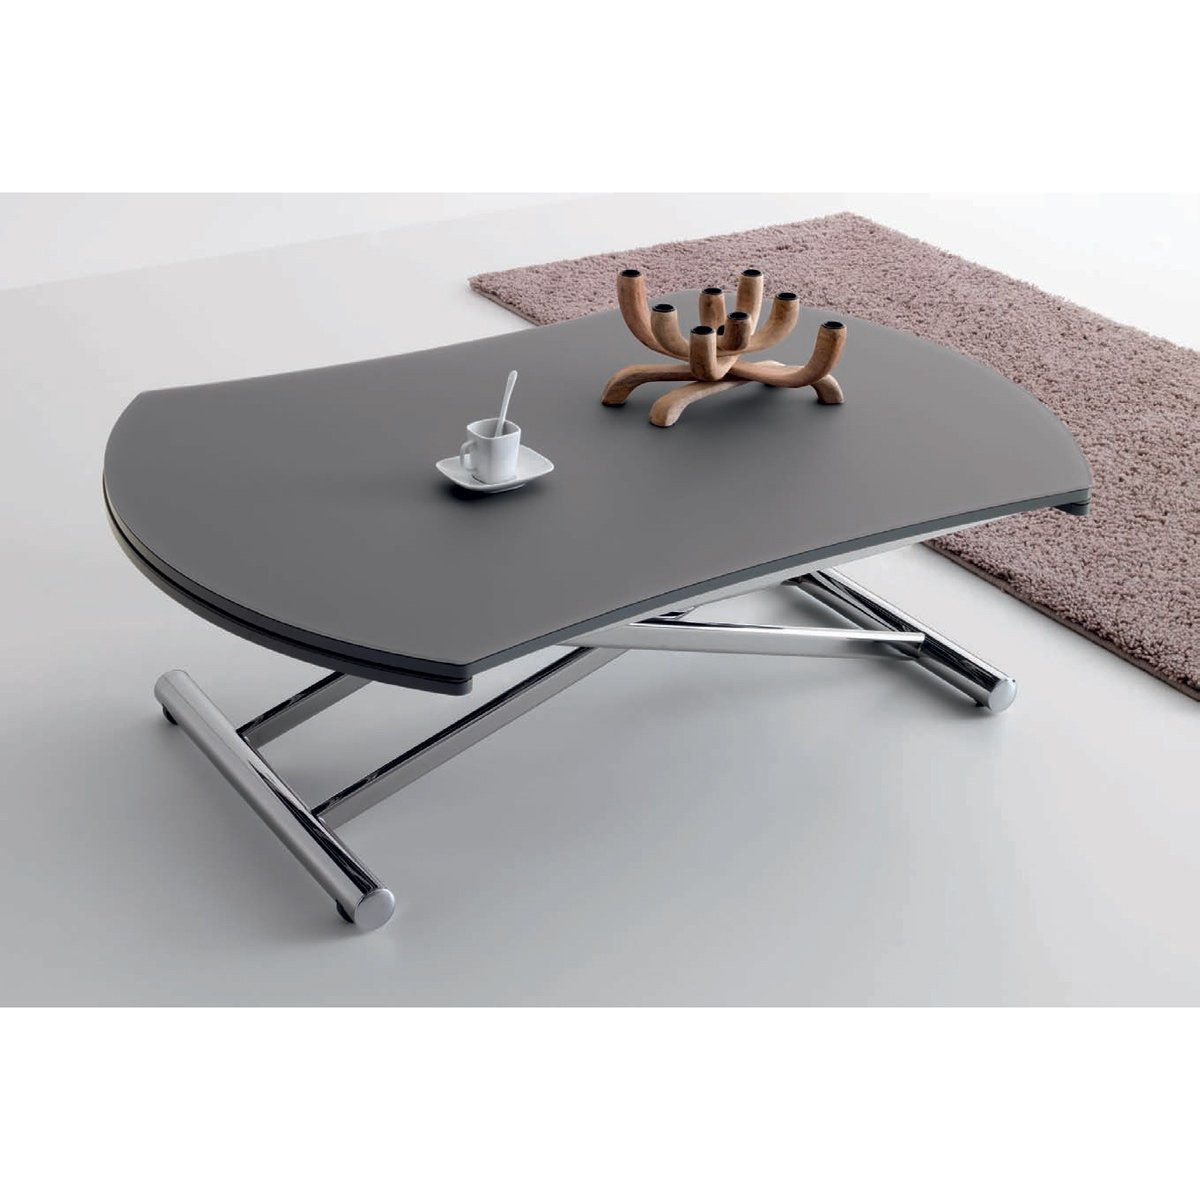 Table basse relevable ronde nice verre opaque meubles - Table basse relevable ronde ...